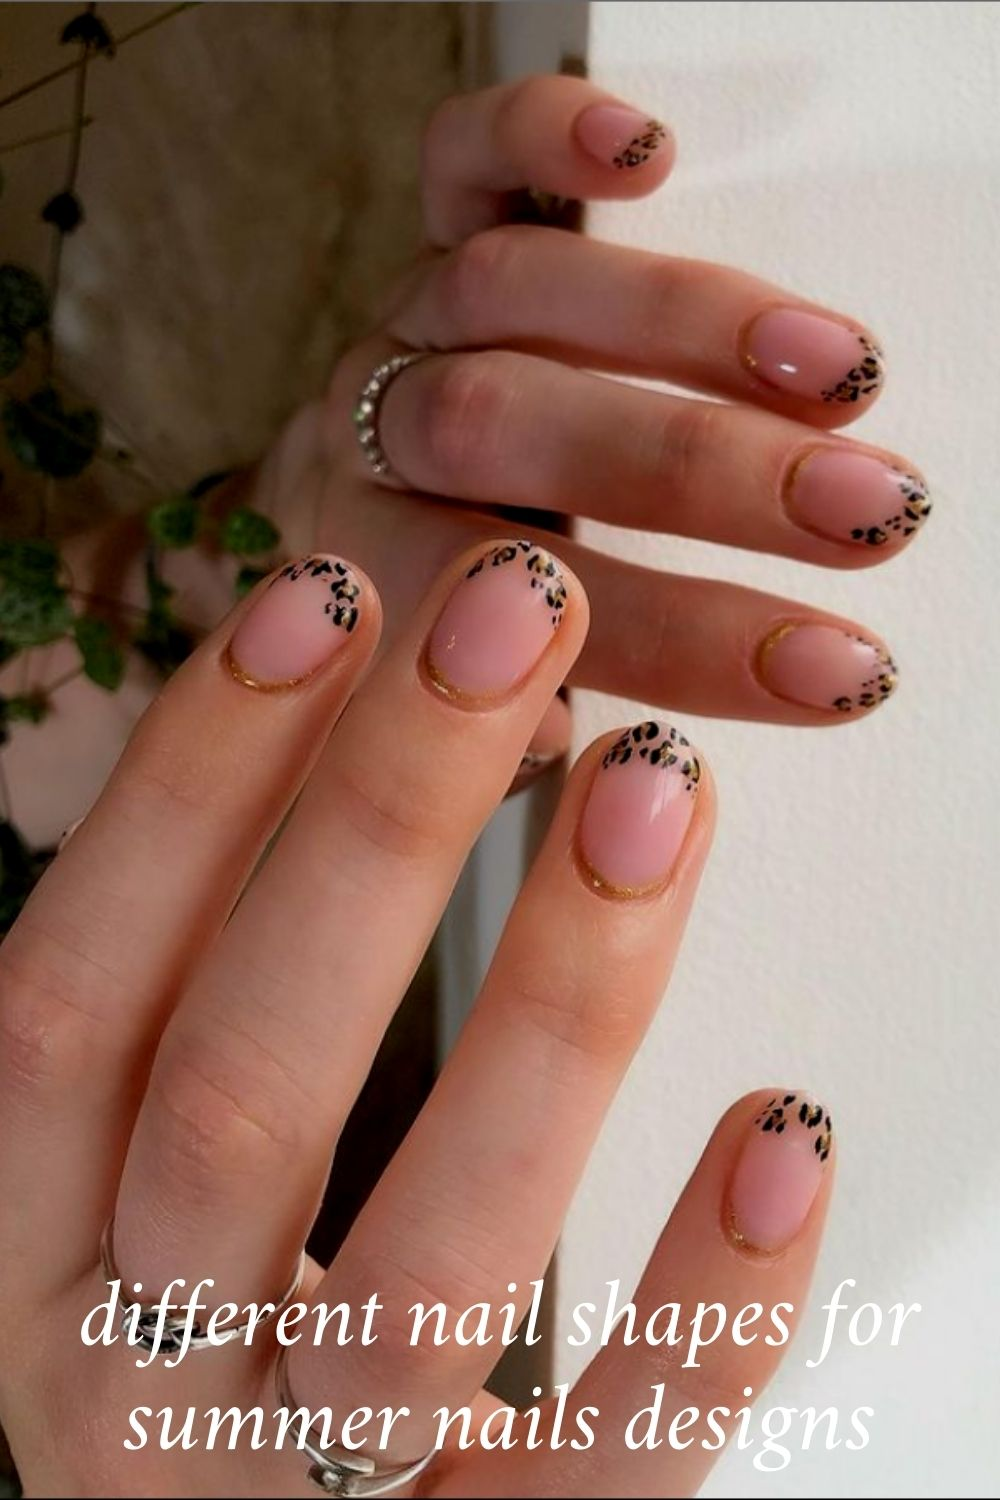 Cute Summer Nails Design with Acrylic Nail Shape in 2021